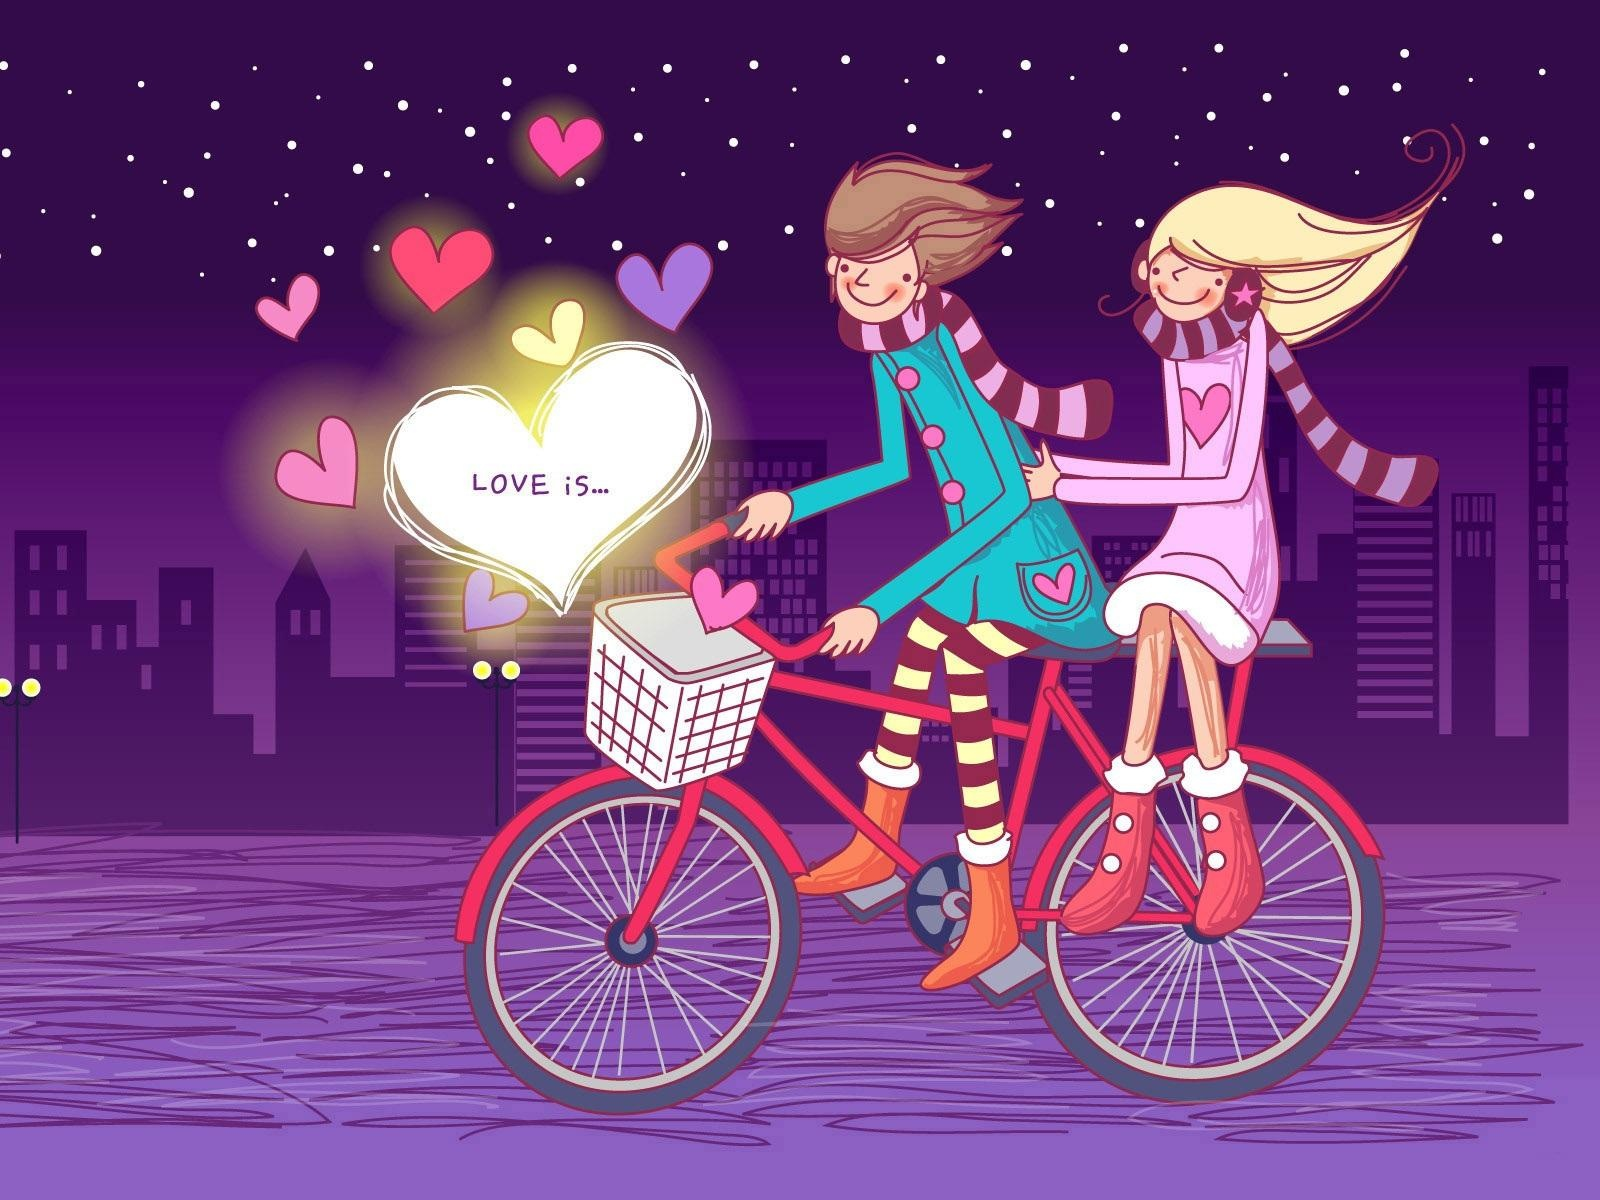 Love Wallpaper Hd cartoon : Top 150+ Beautiful cute Romantic Love couple HD Wallpaper